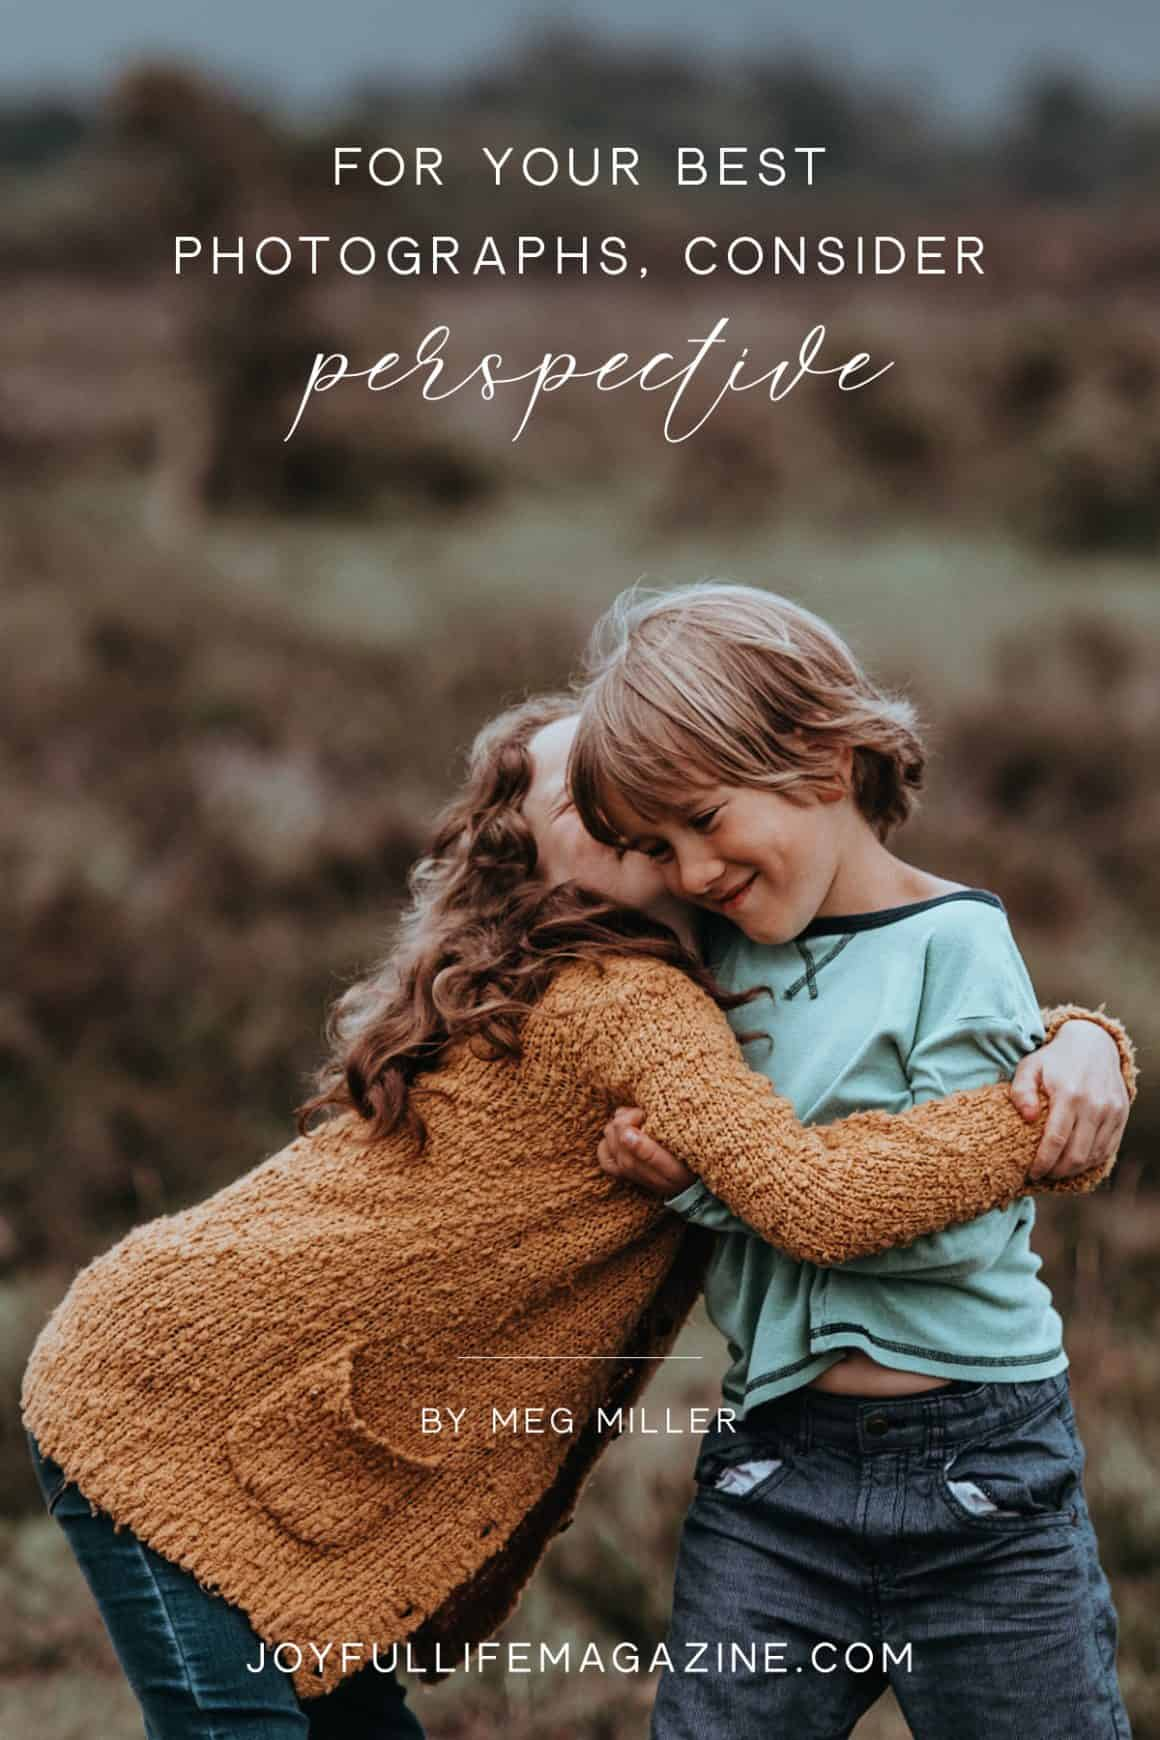 For Your Best Photographs, Consider Perspective | by Meg Miller | The Joyful Life Magazine